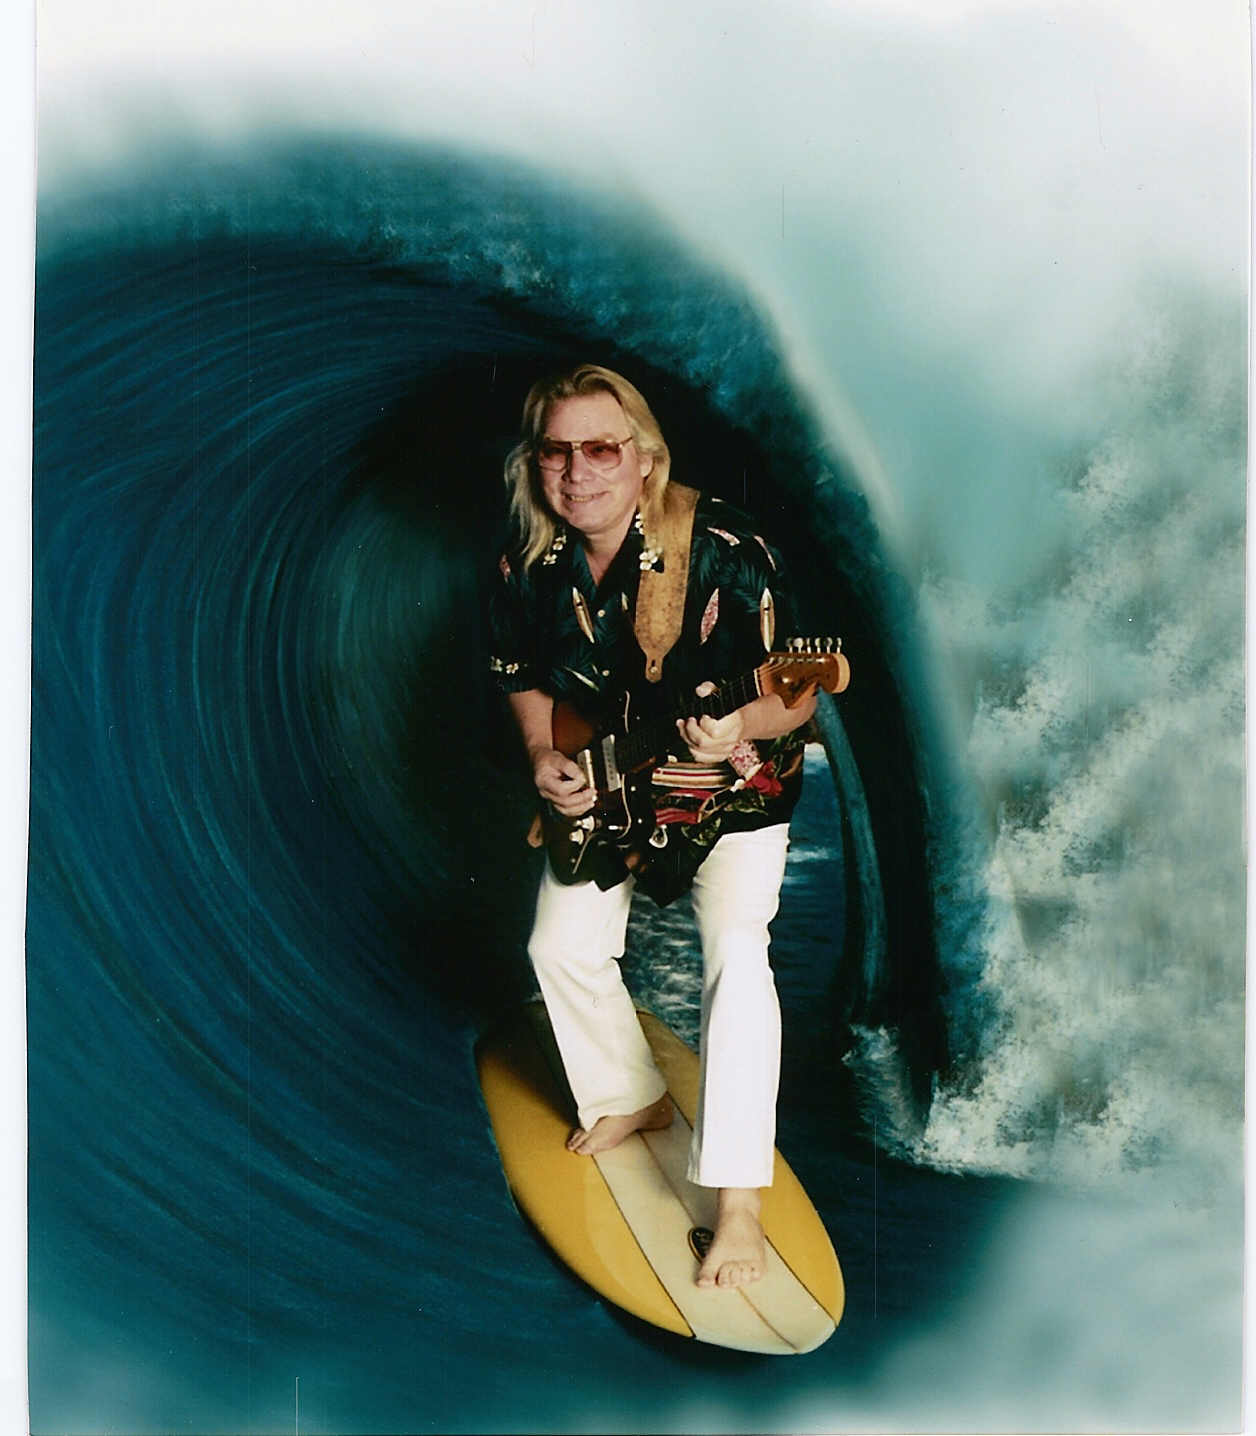 Merrell Fankhauser Rockin' and Surfin', 2005